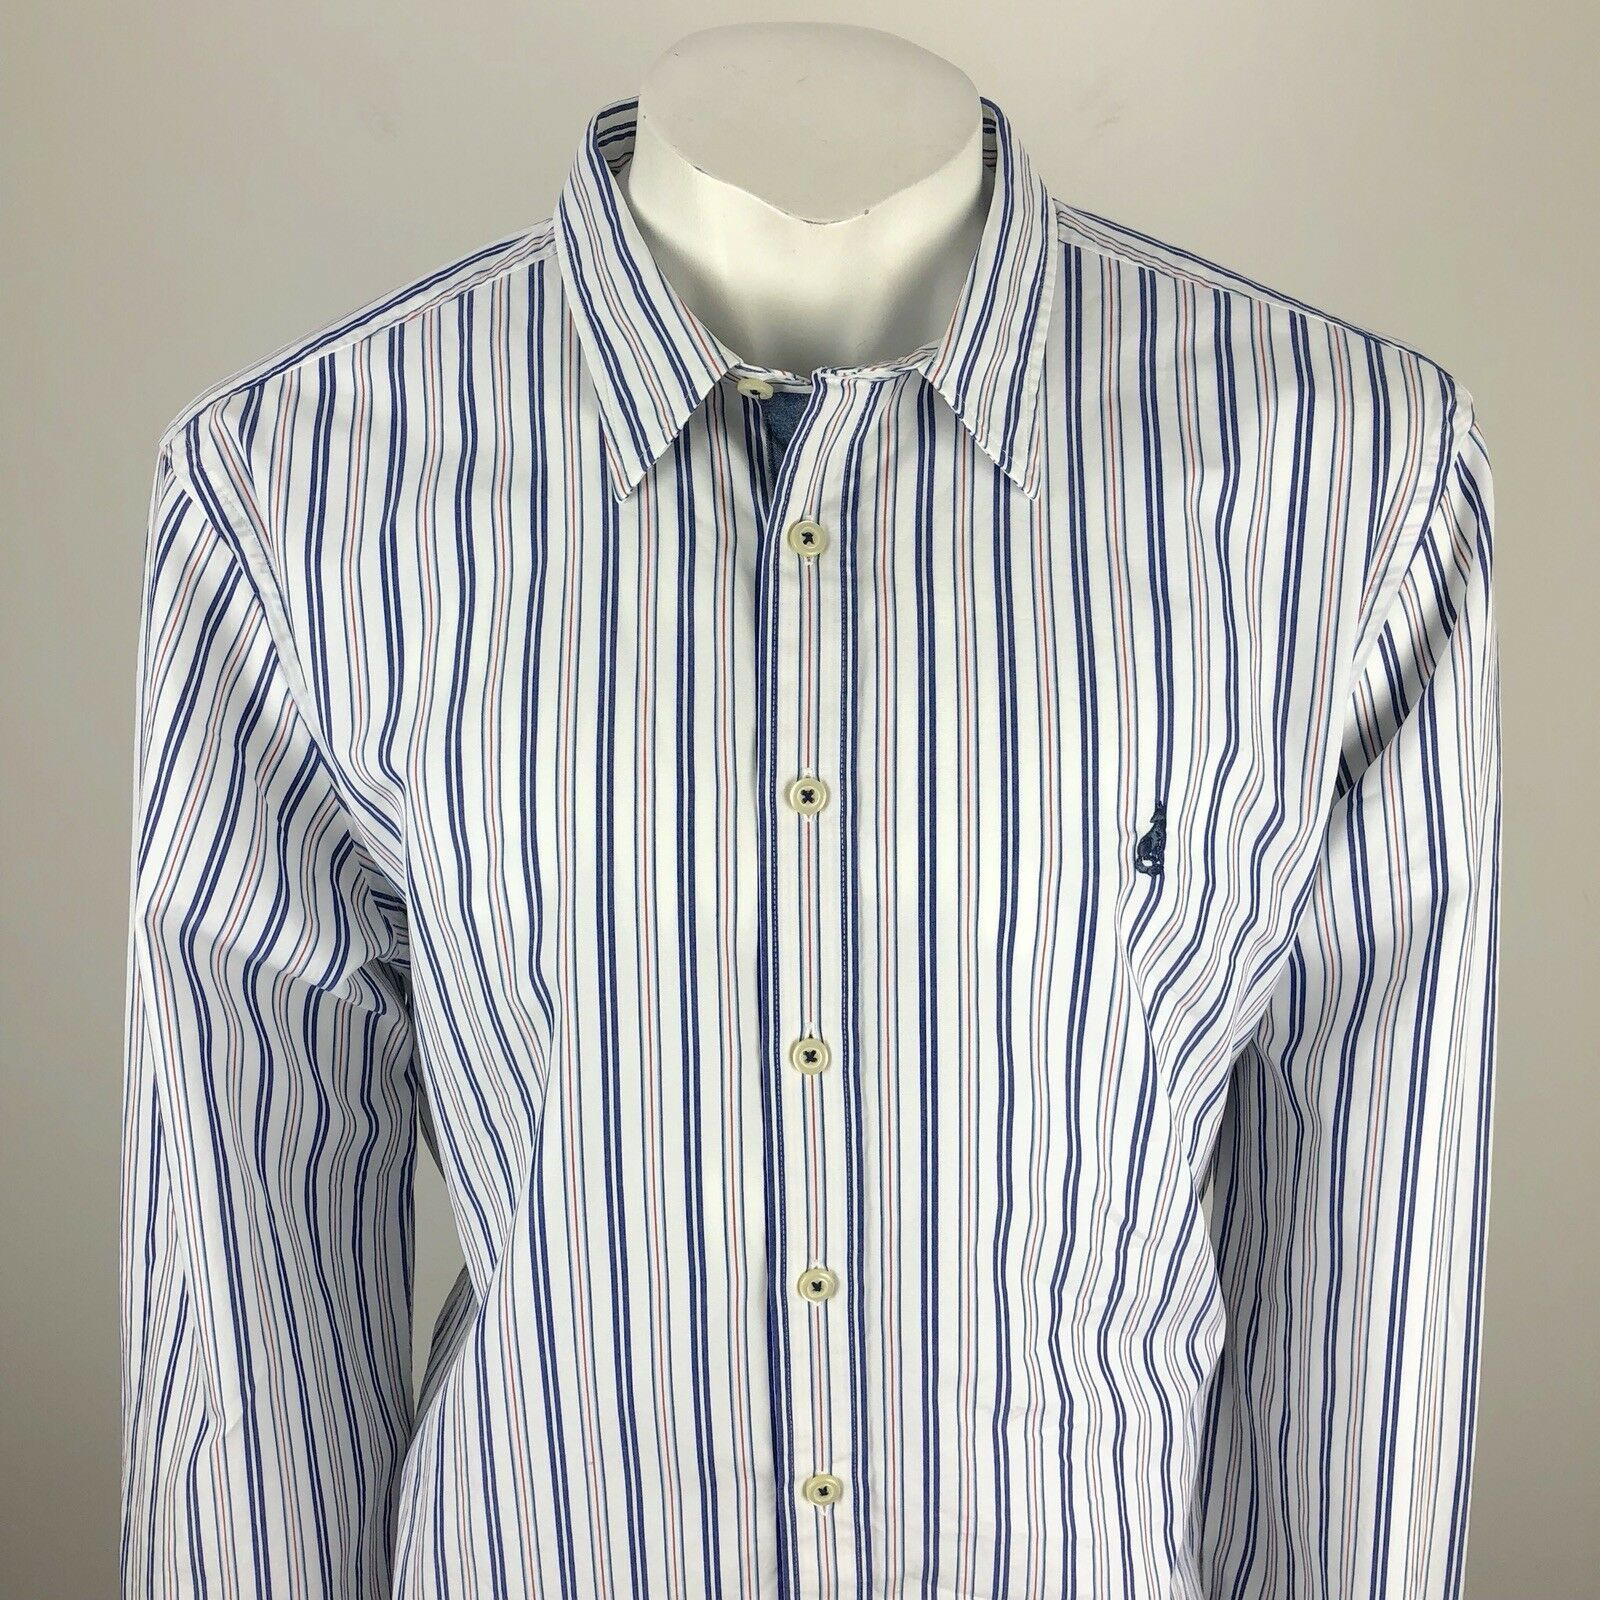 Thomas Pink Mens Striped Button Down Shirt White Red bluee - Size Large